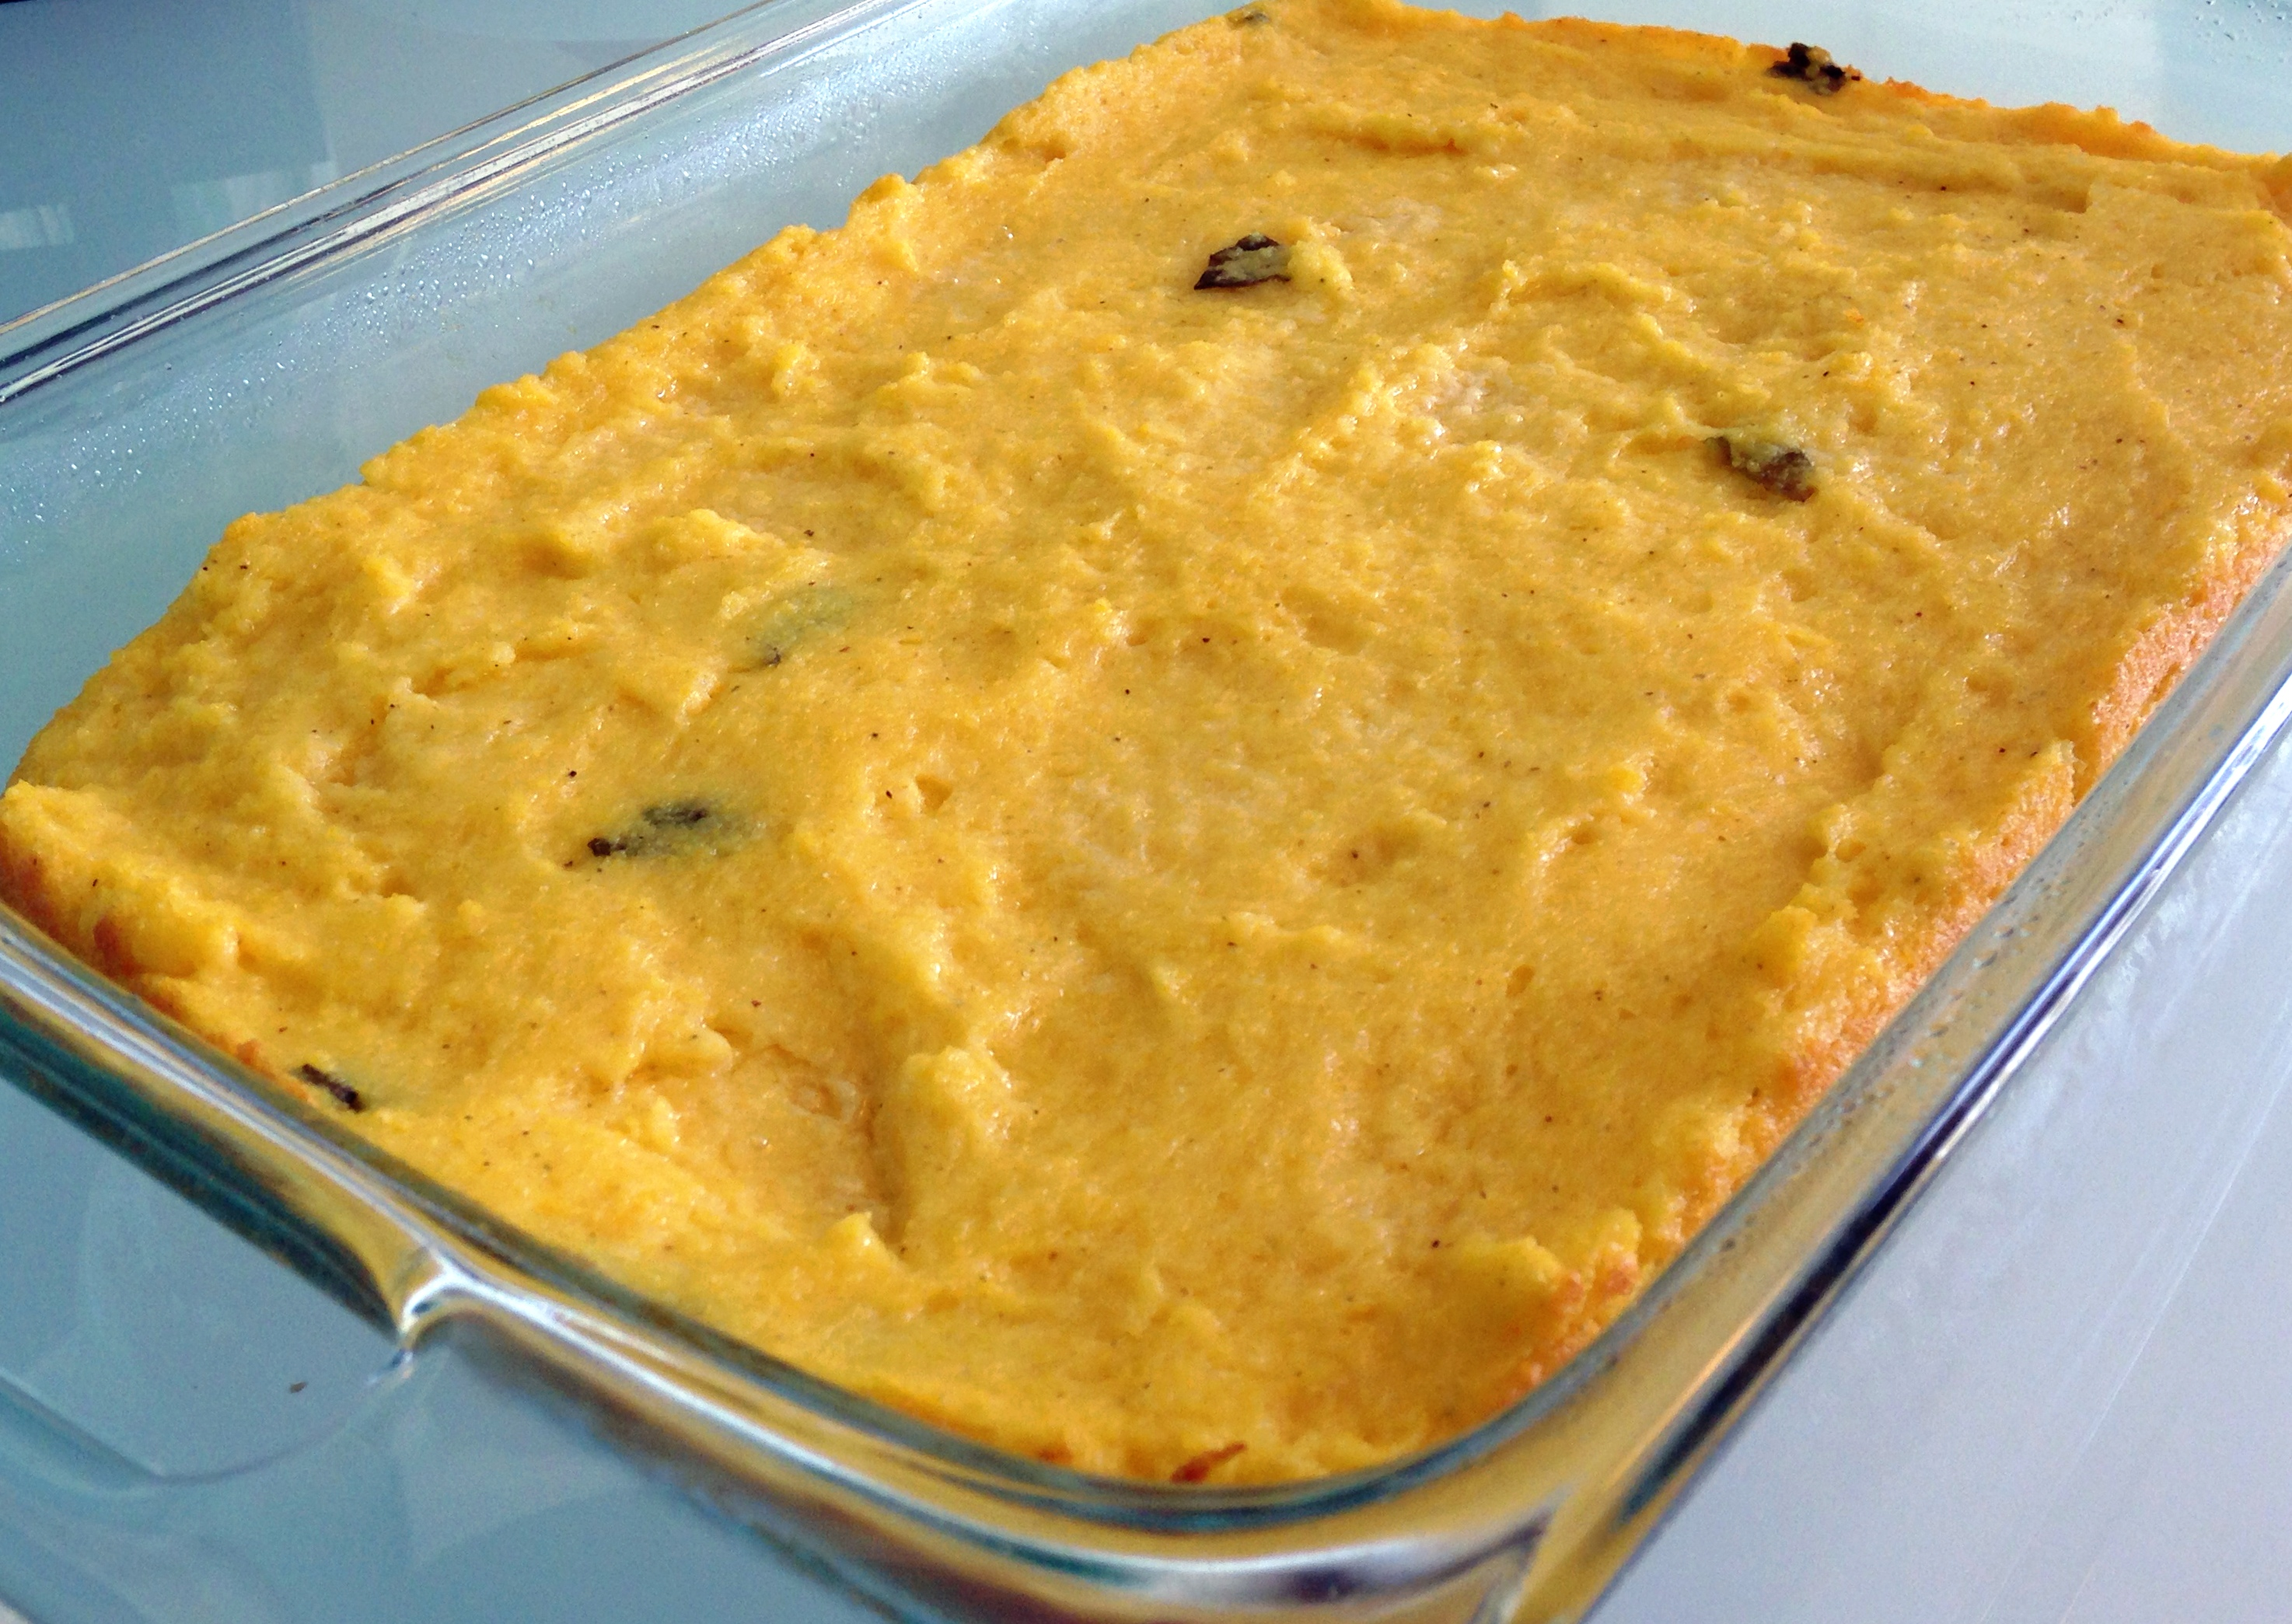 Oven Baked Polenta - sometimes you need to cook